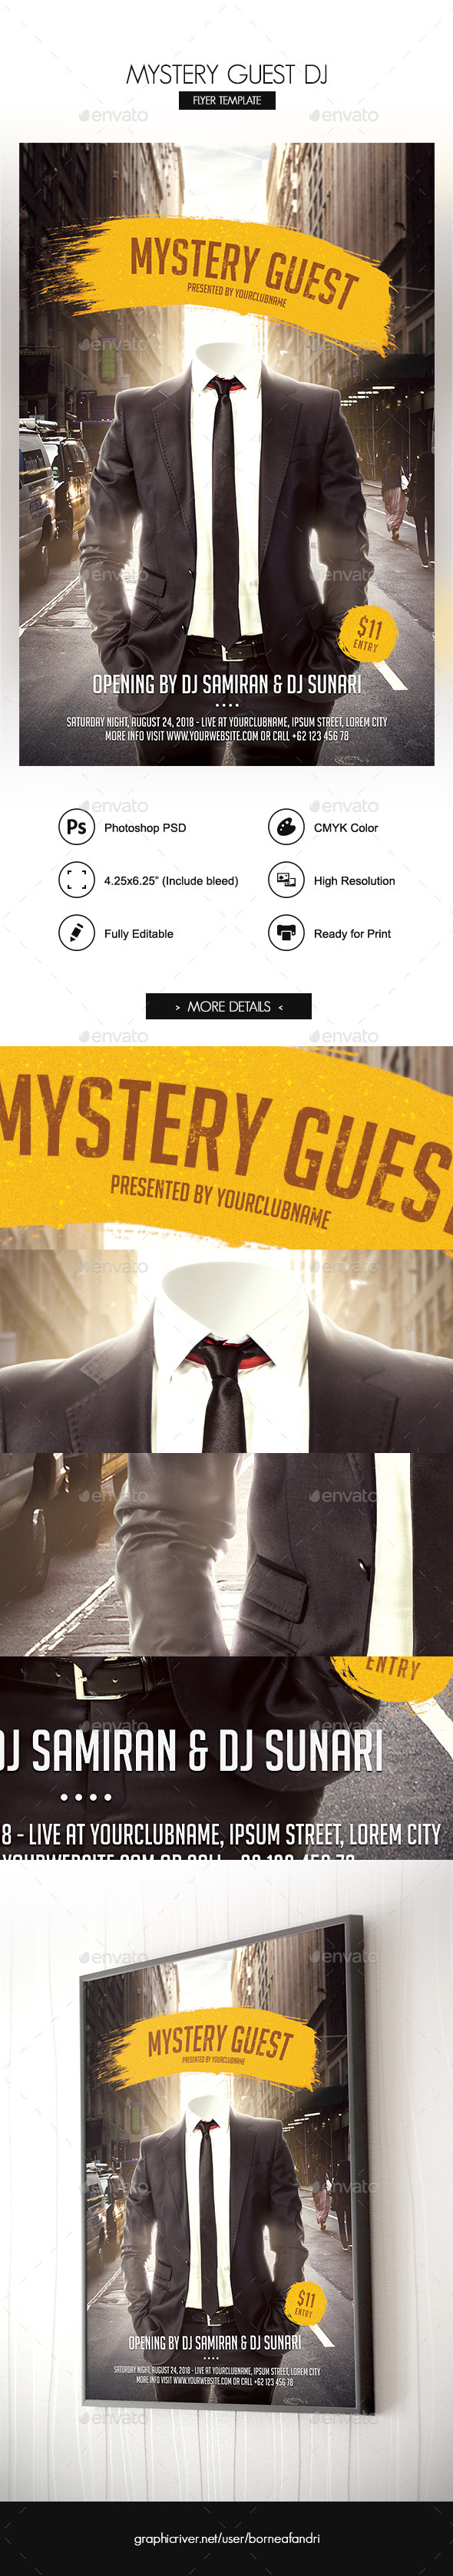 GraphicRiver Mystery Guest DJ Flyer 11873653